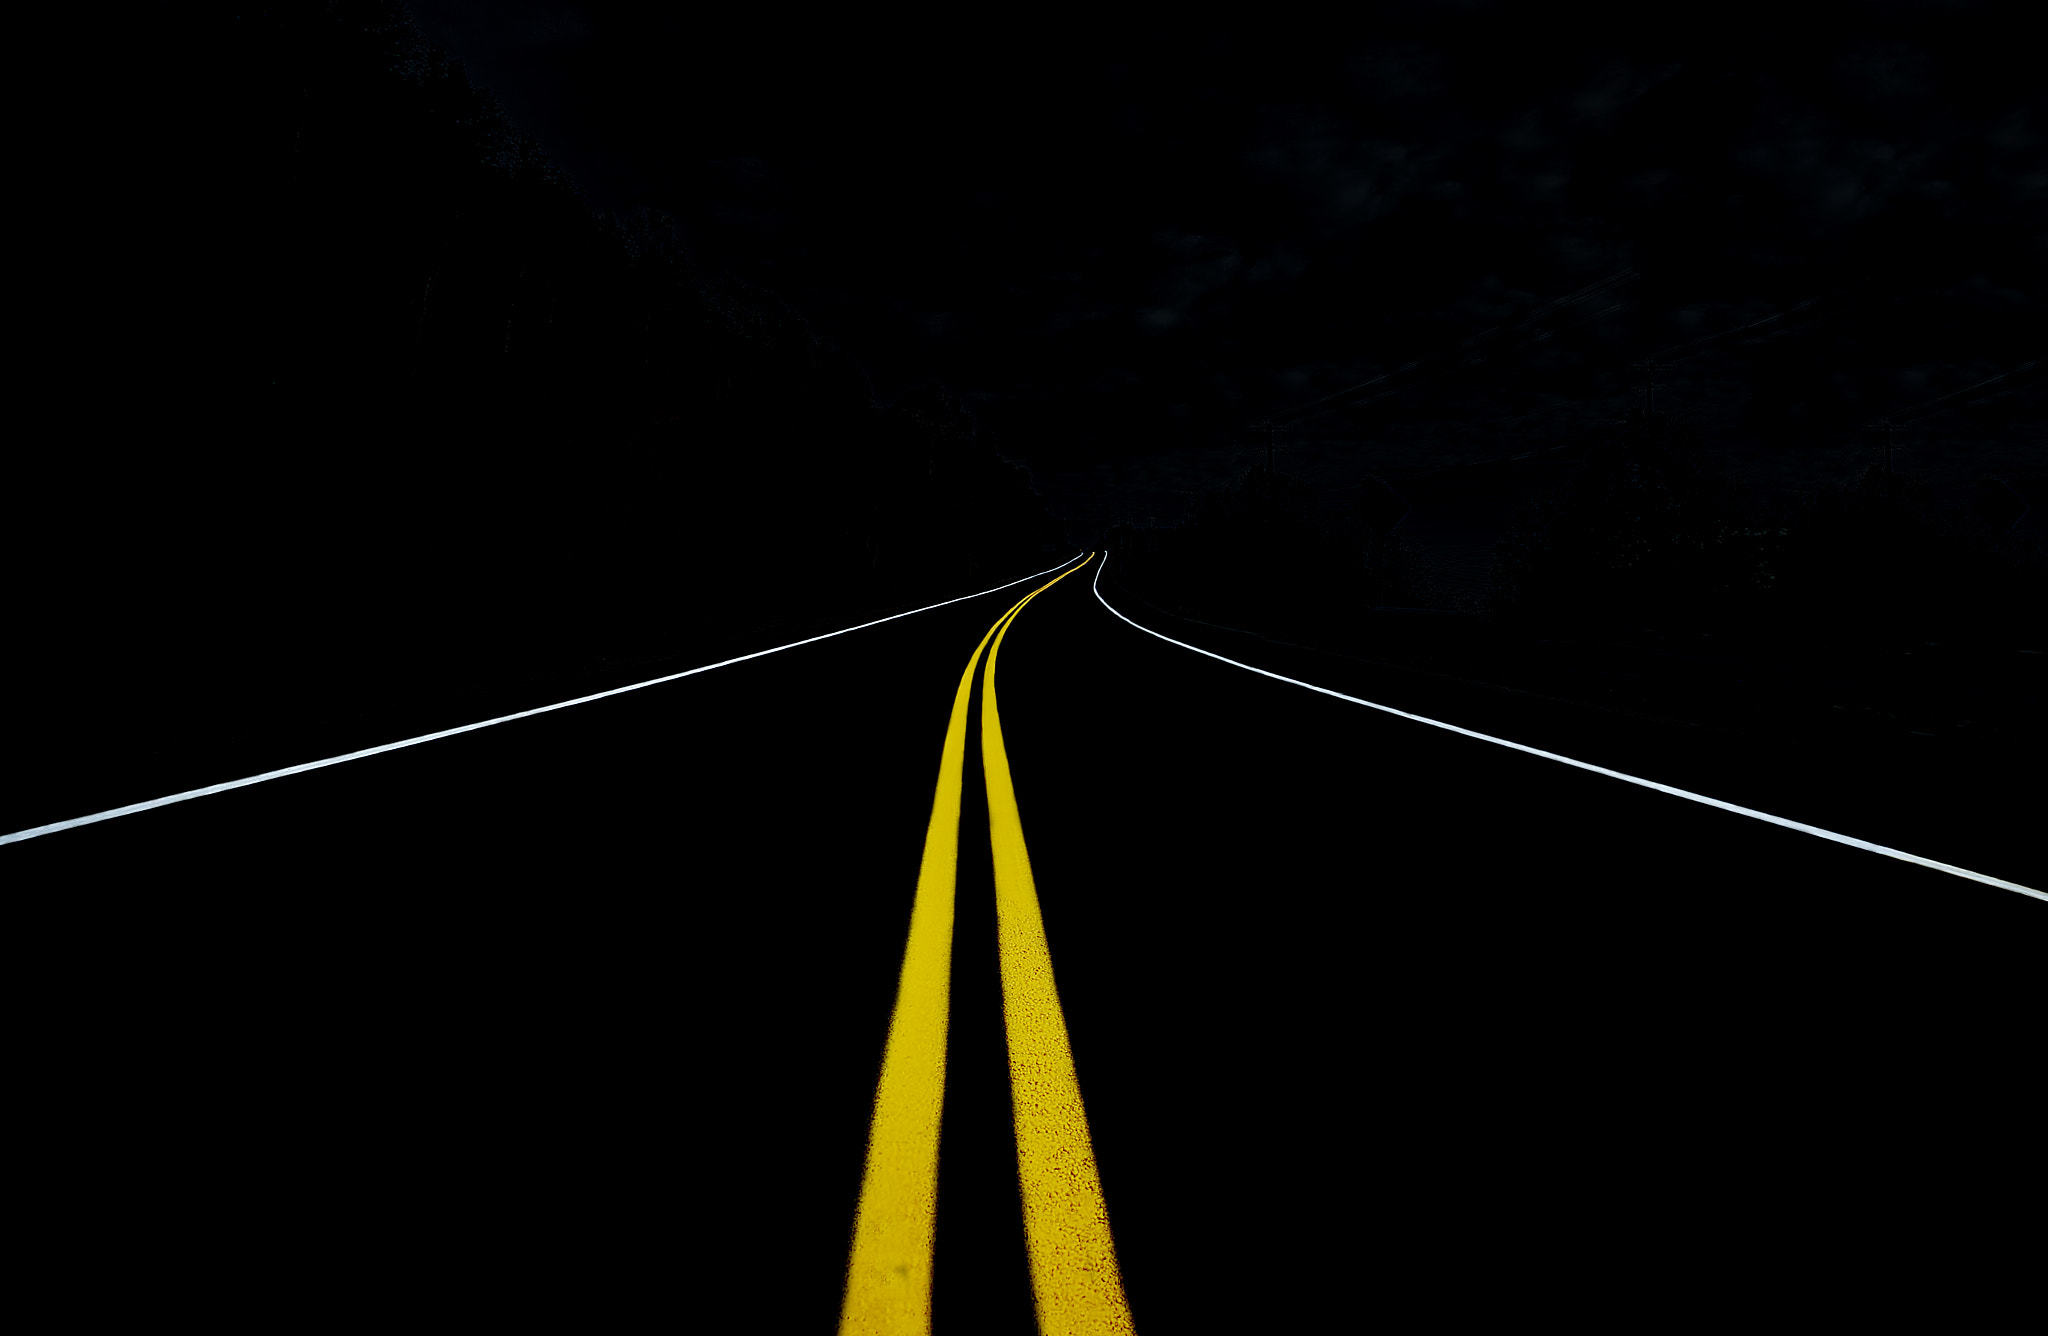 Photograph The Road to Nowhere by Roland Shainidze on 500px